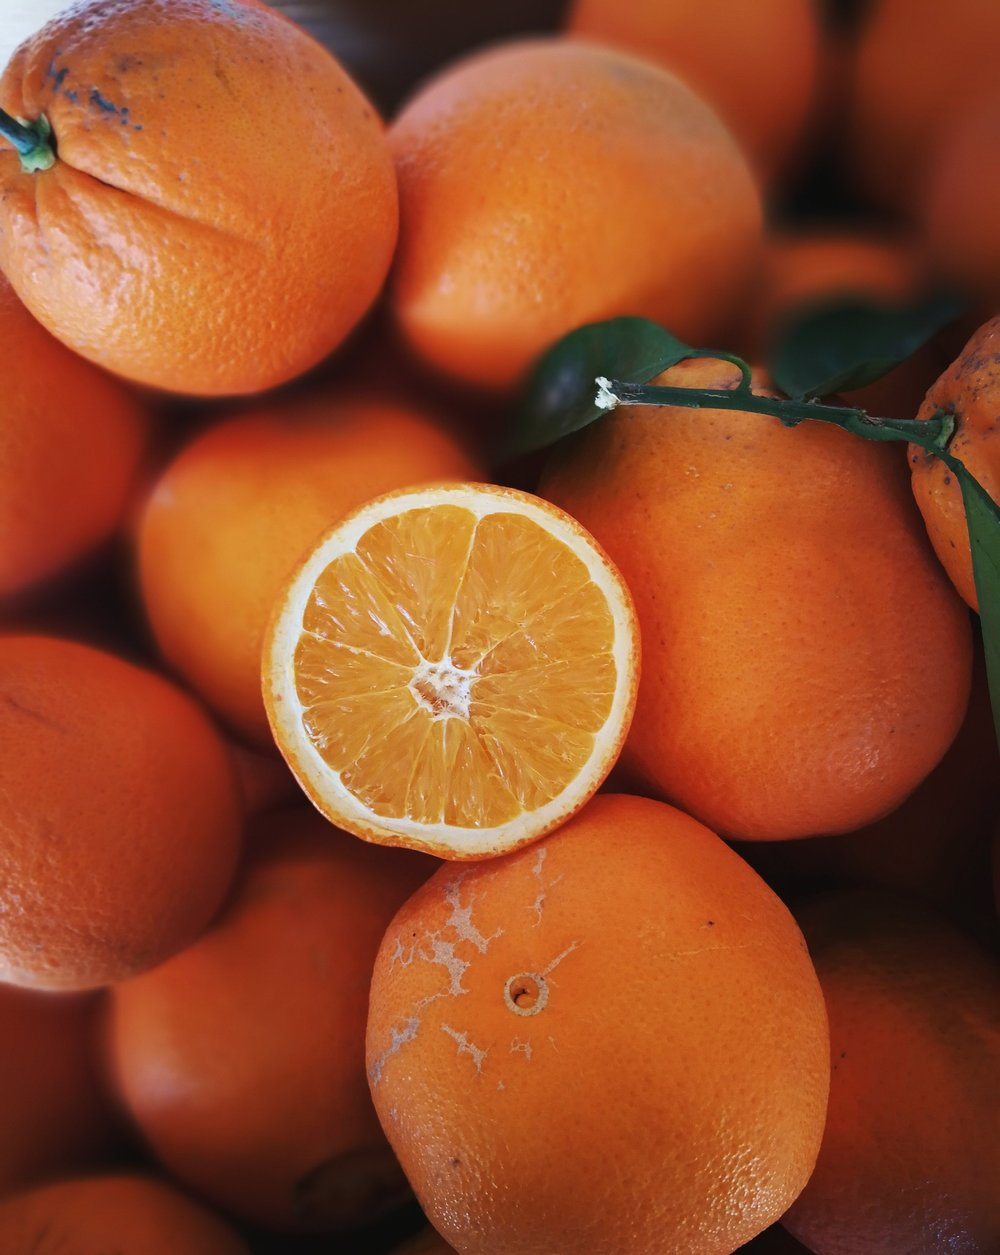 NEWHALL Navel Oranges - A newer variety of the navel orange, the Newhall is oblong with a thicker peel (makes it easier for peeling). It can also be used for juicing.